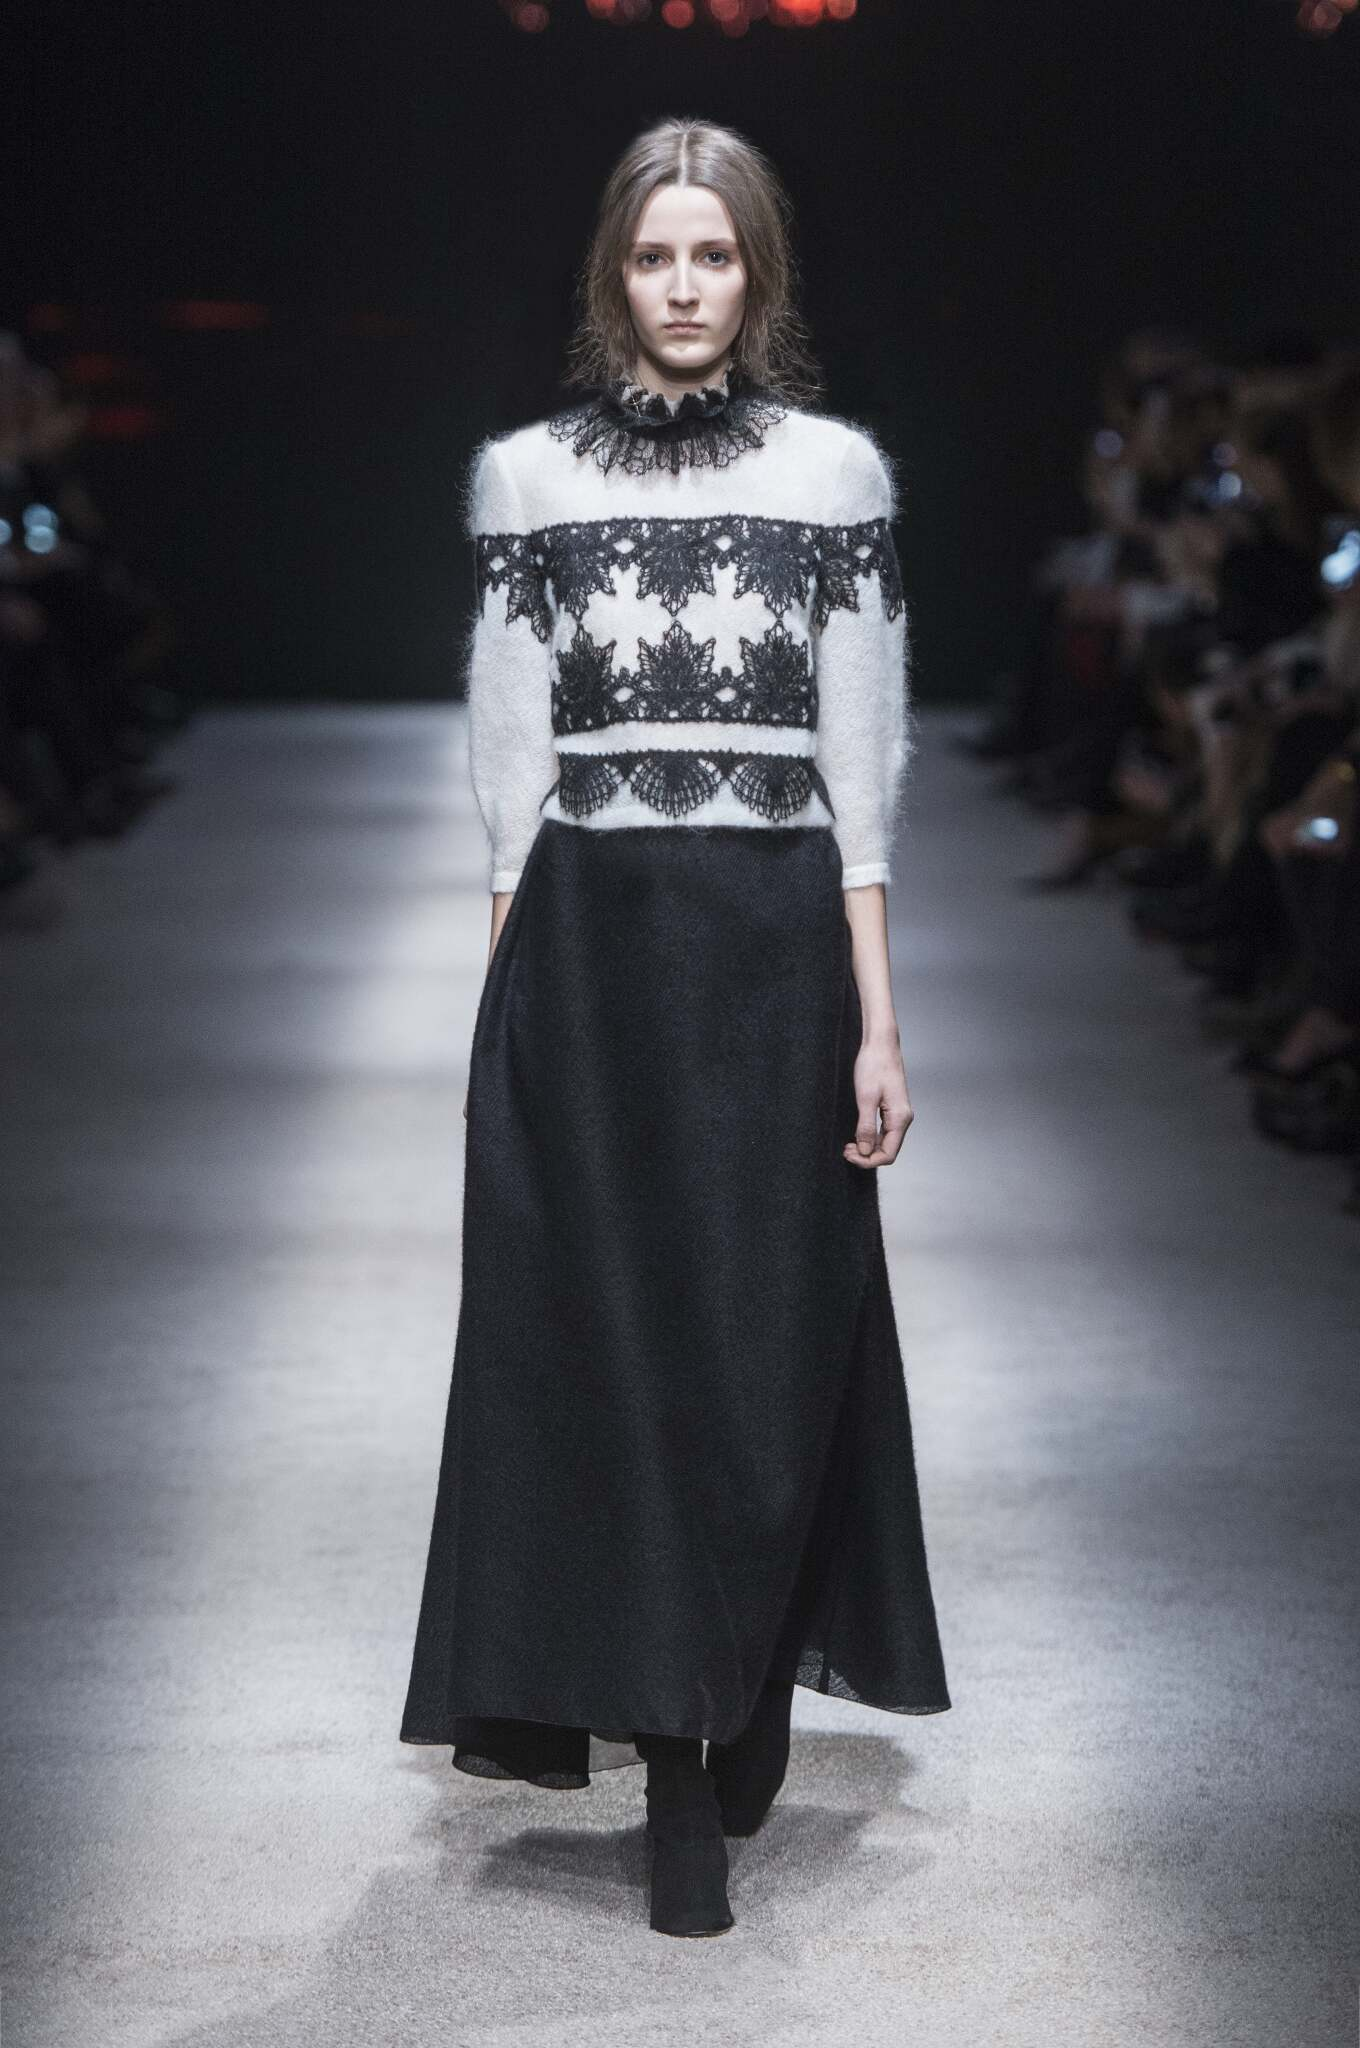 Alberta Ferretti Collection Fall 2015 Catwalk